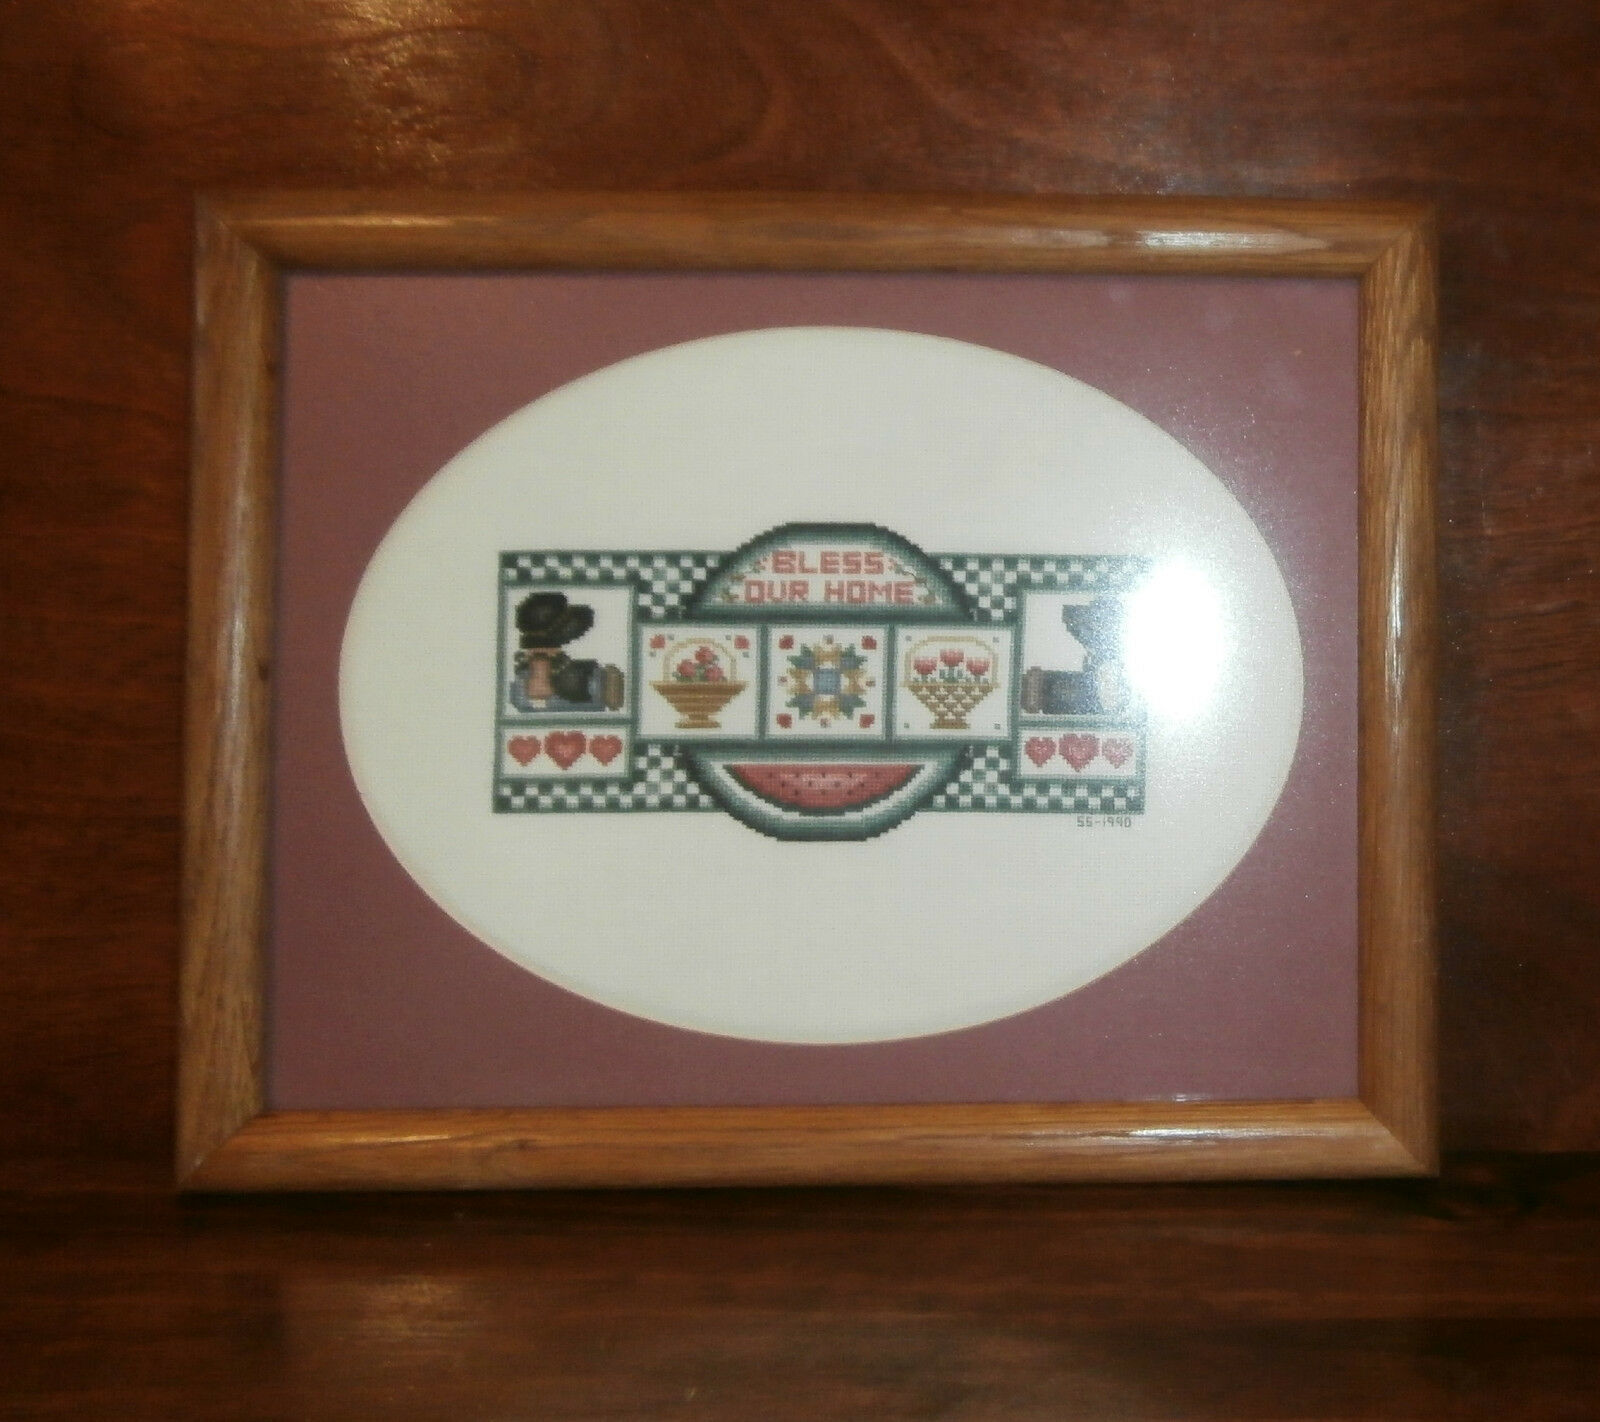 "Primary image for Bless Our Home Finished Framed Cross Stitch 15.5"" x 12.5"" Dolls Hearts Country"